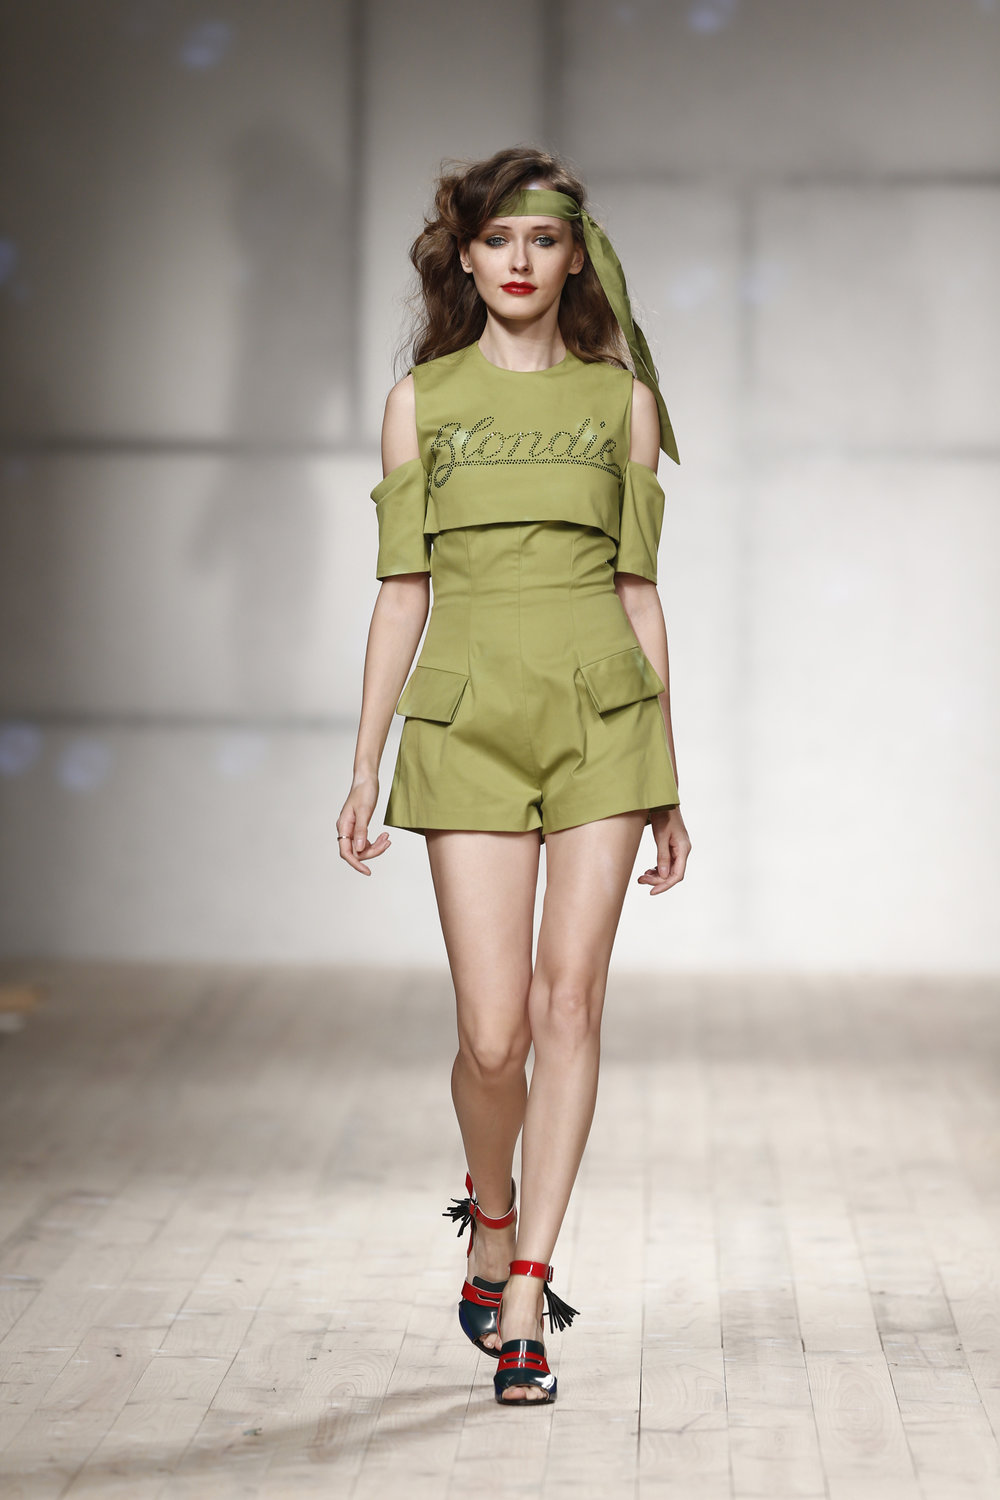 green jumpsuit with swarovski crystals  One available size 36 Original Price 498€ | Discount Price 249€ Ref. LCss17s31